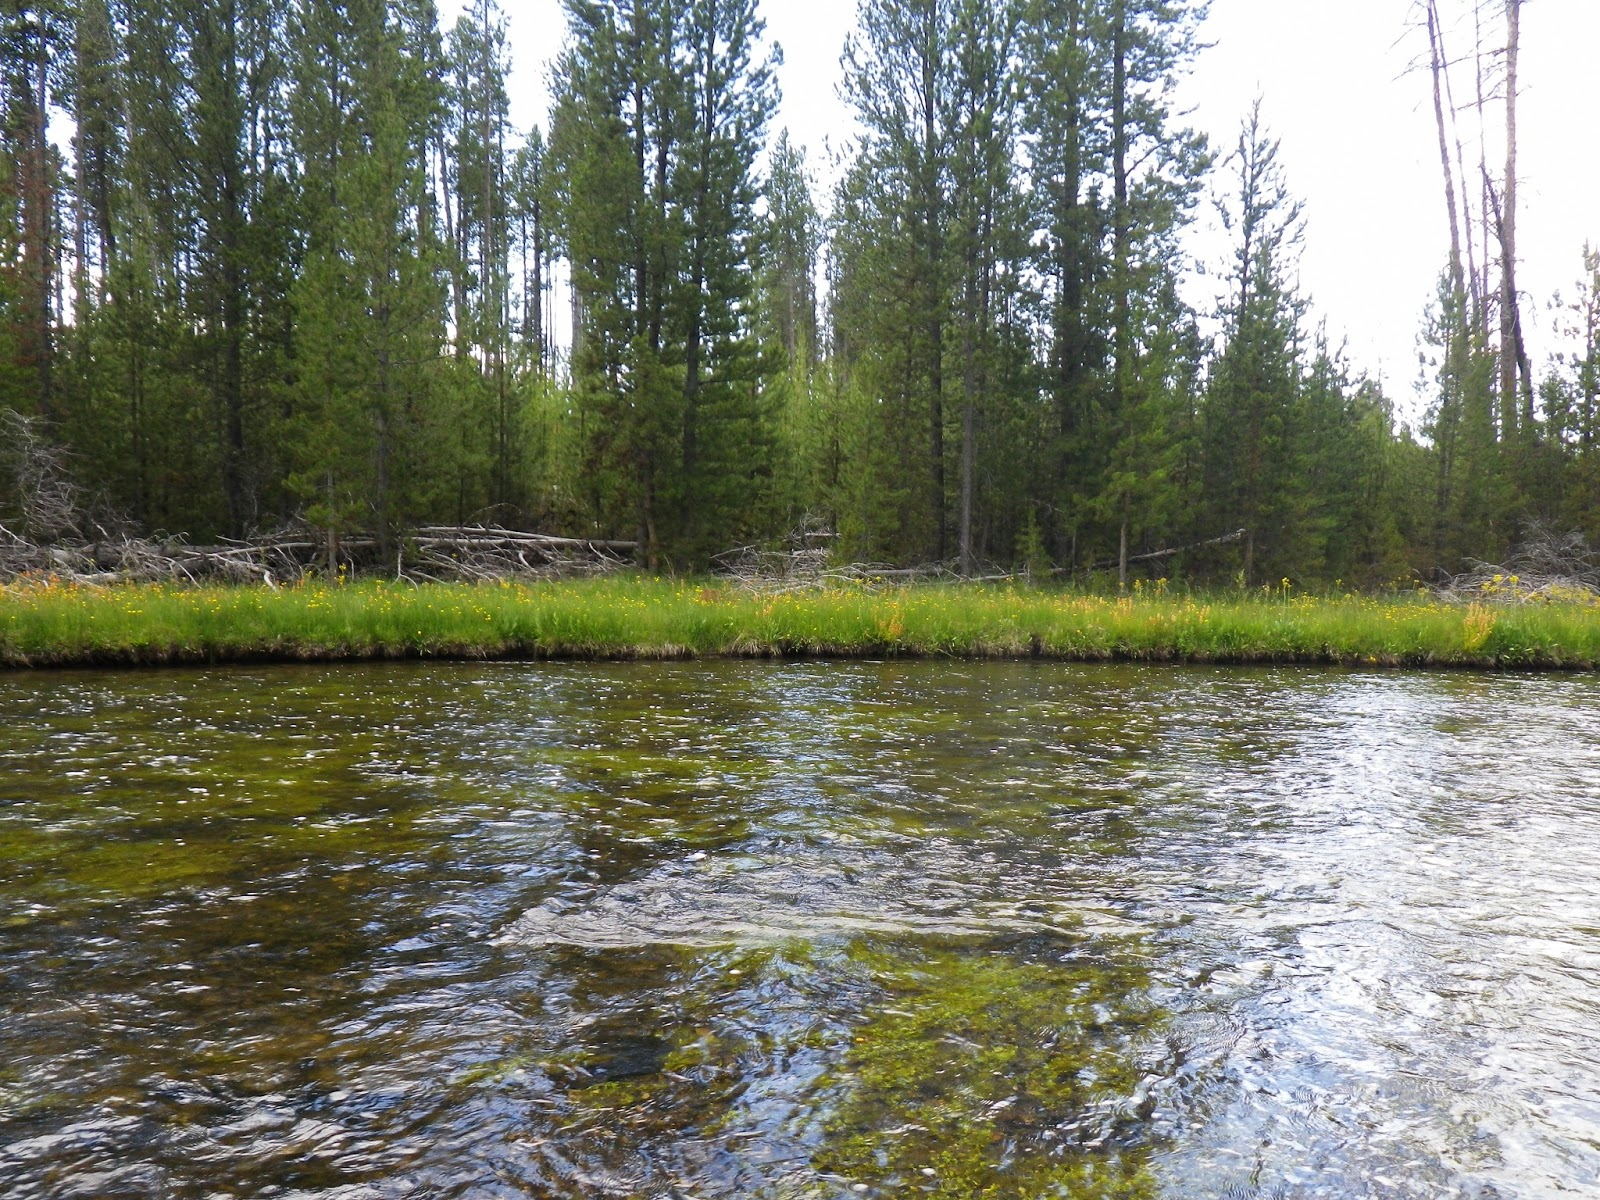 Home waters a fly fishing life the road trip nez perce for Fly fishing yellowstone